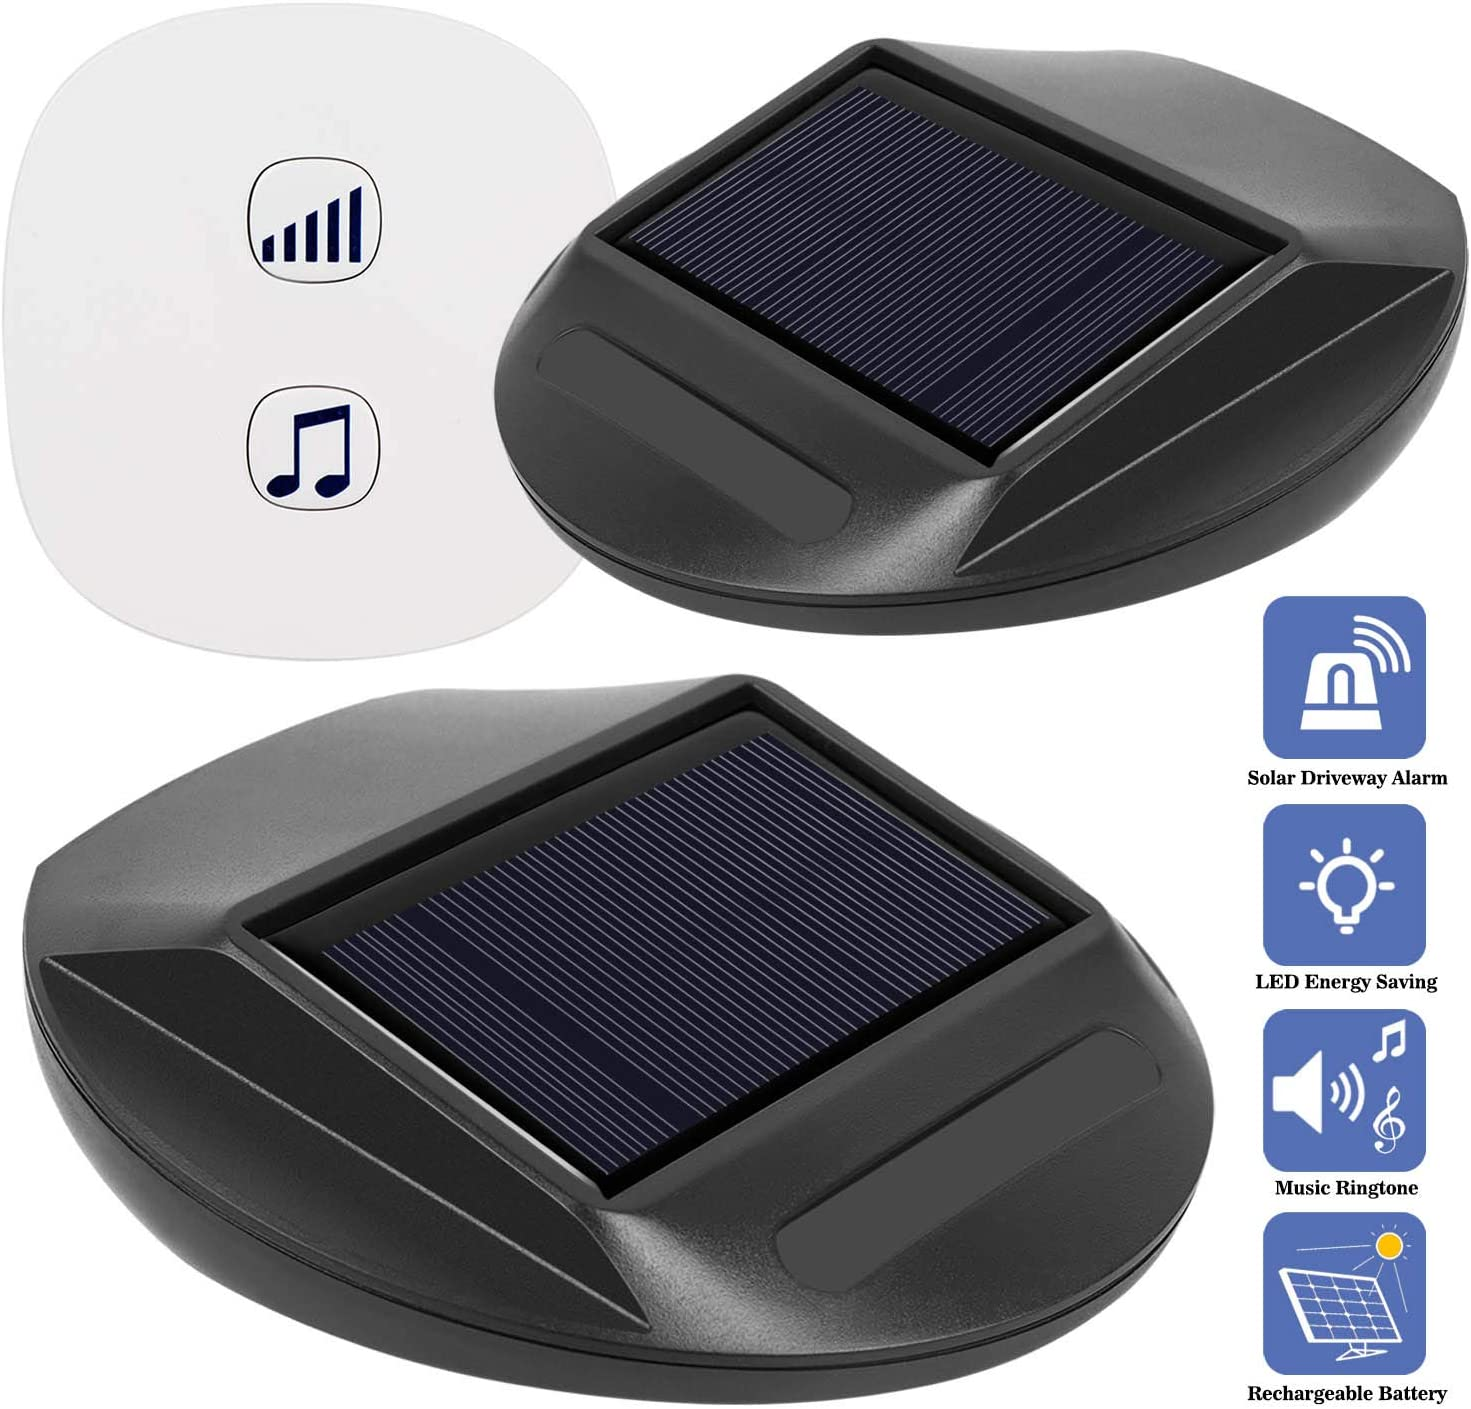 Seanme Solar Motion Sensor Alarm,Solar Lights, Wireless Driveway Alarm, Outdoor,Indoor Weatherproof Business Detect Alert with 2 Sensor and 1 Receiver,38 Chime Tunes – LED Indicators